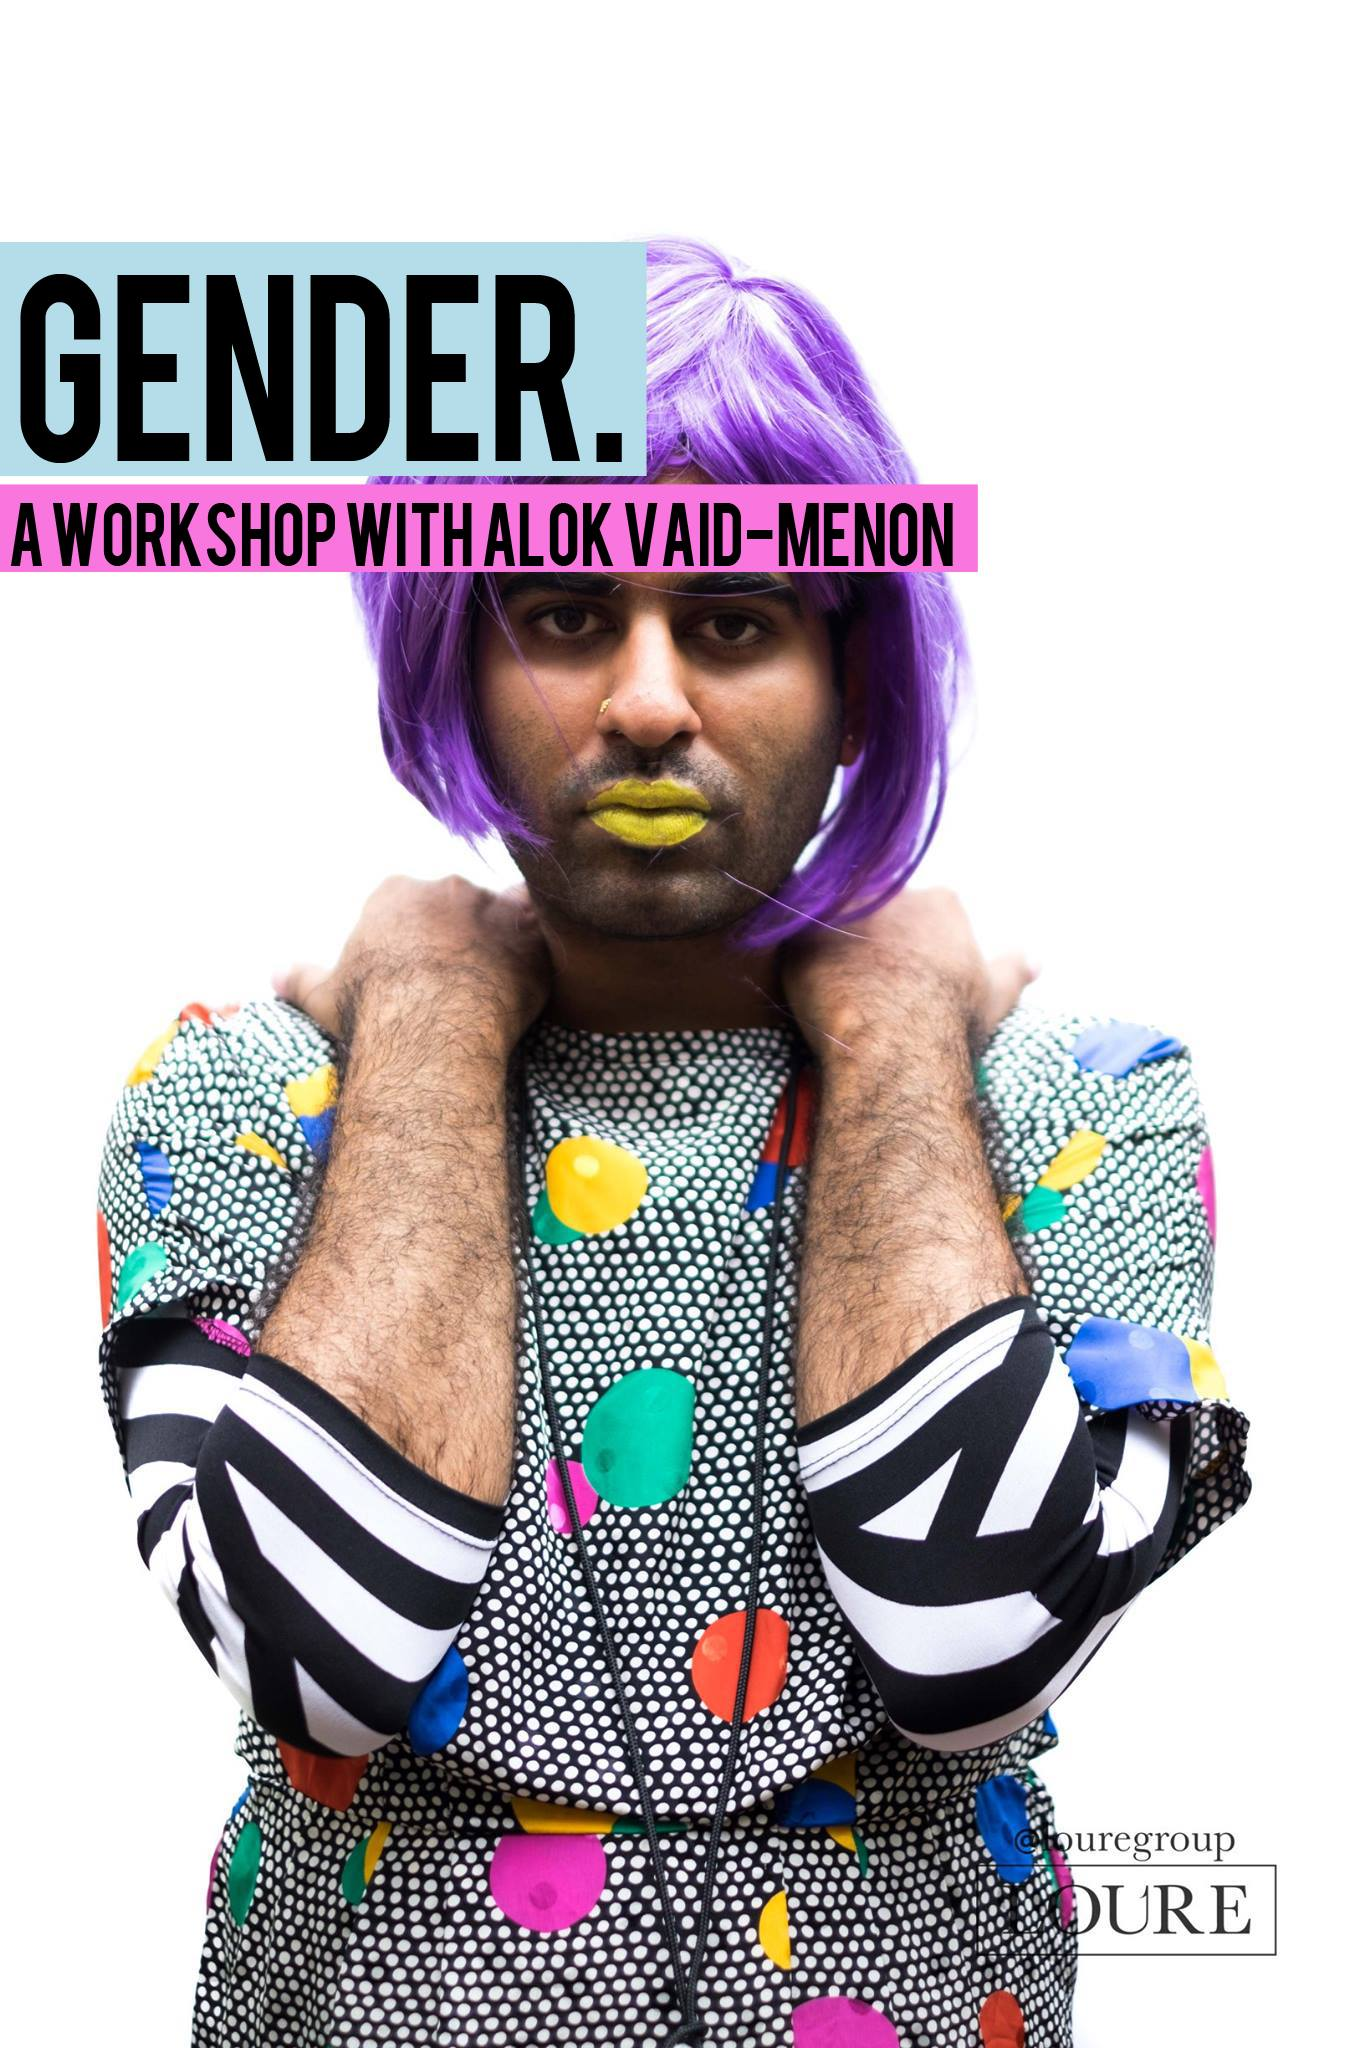 Gender. A Workshop with Alok Vaid-Menon (Bombay)